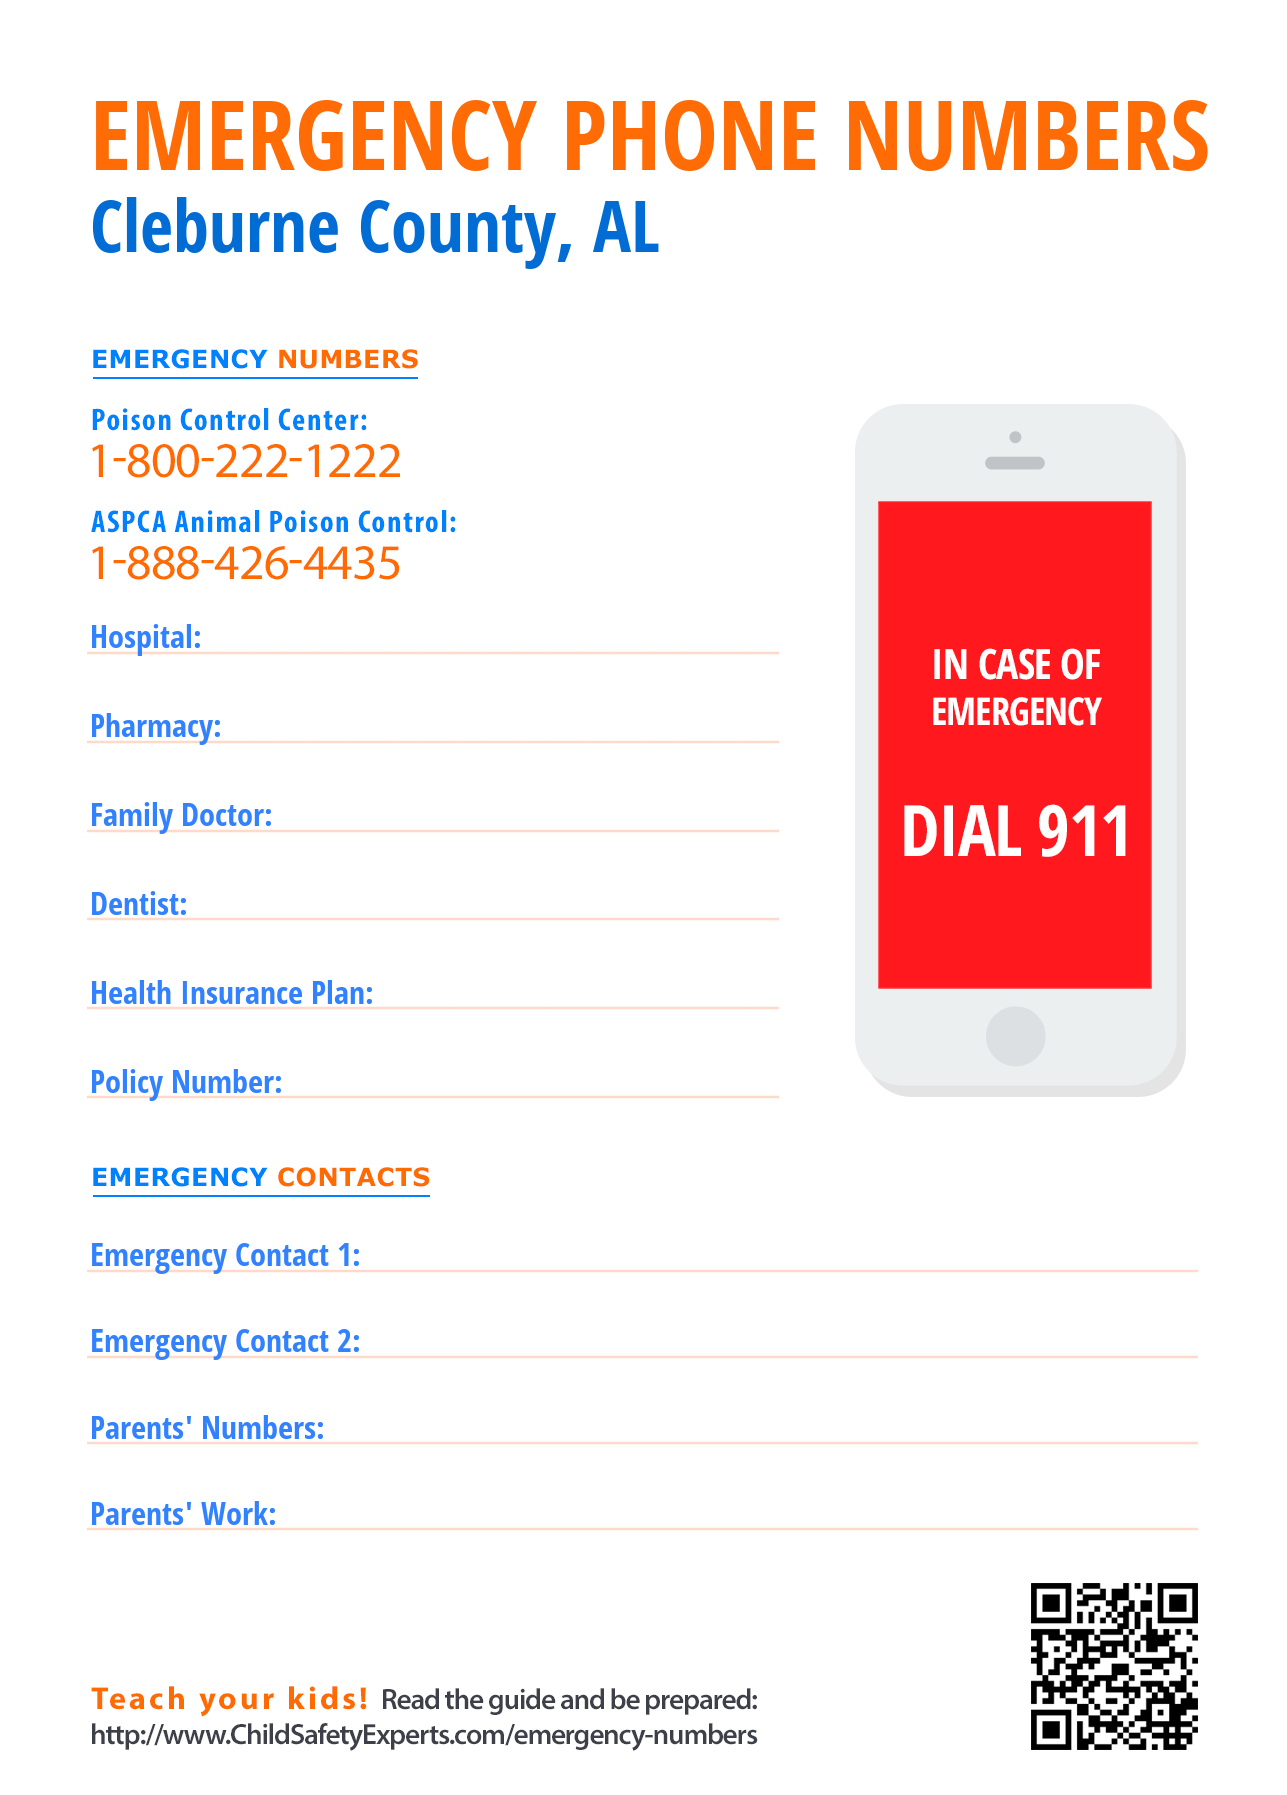 Important emergency phone numbers in Cleburne County, Alabama